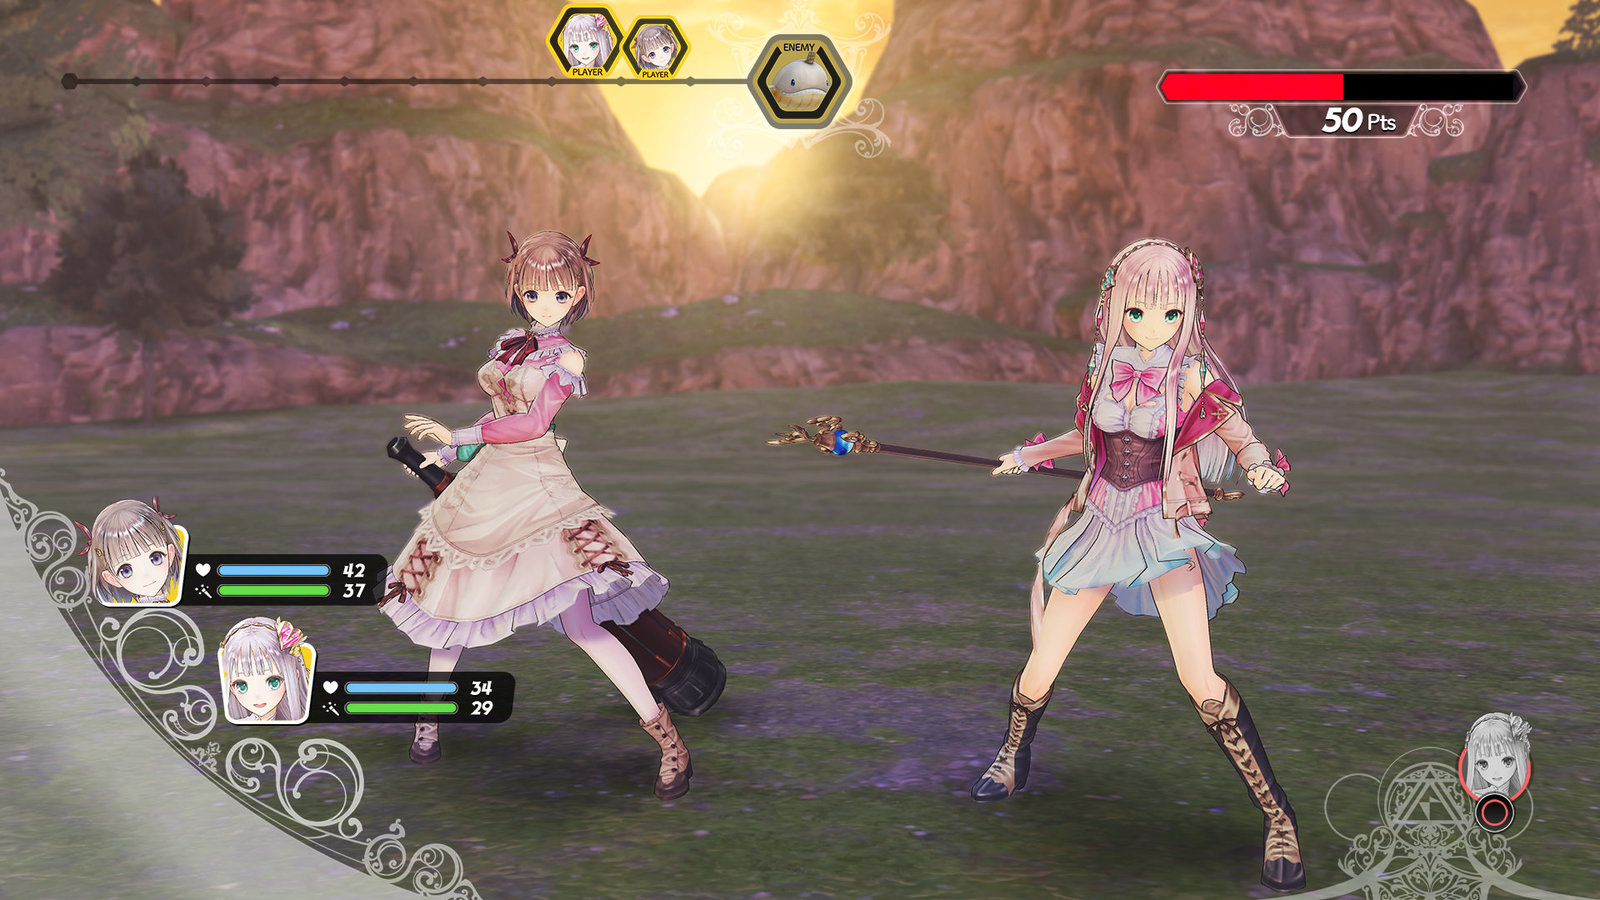 Atelier Lulua: The Scion of Arland for Switch image